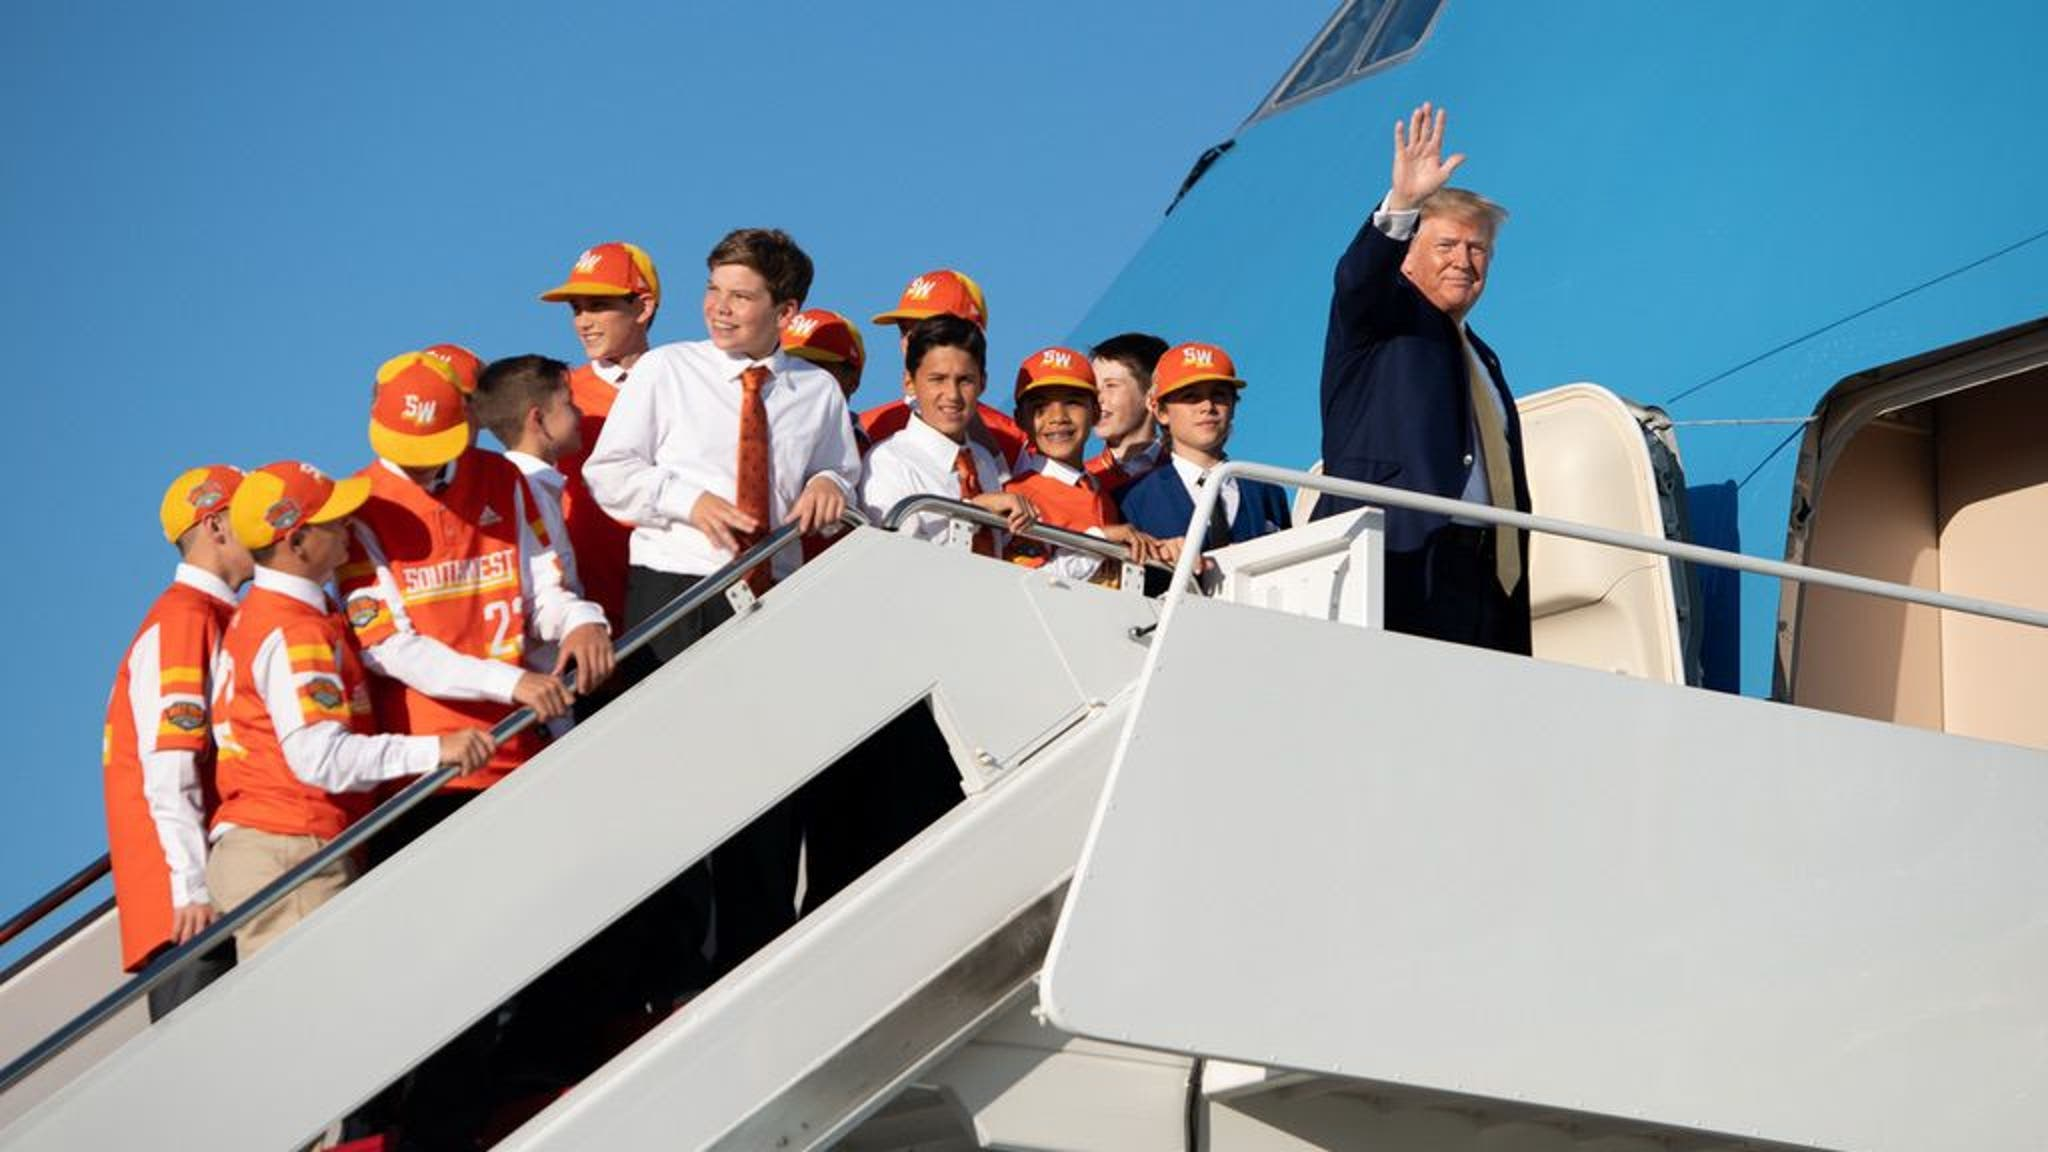 Donald Trump Gives Little Leaguers Air Force One Lift After White House Visit